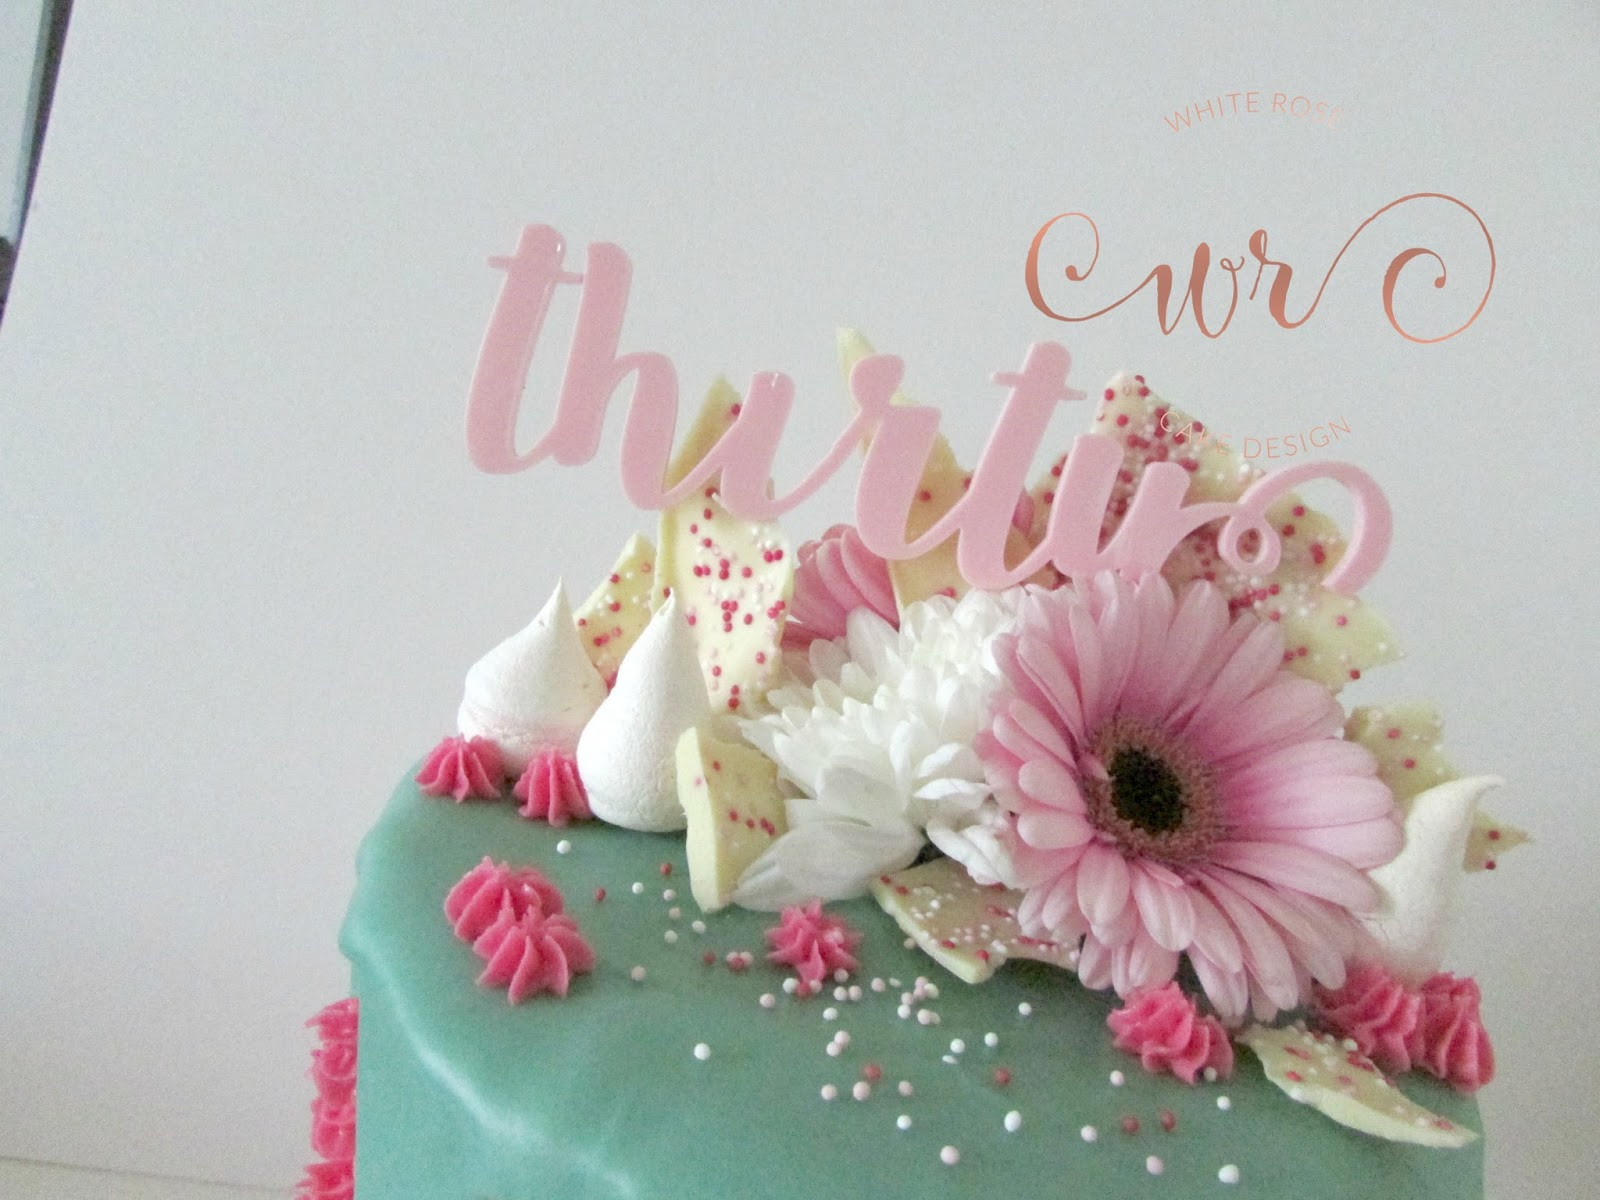 Wondrous Pink And Teal Drippy 30Th Birthday Cake White Rose Cake Design Funny Birthday Cards Online Inifodamsfinfo